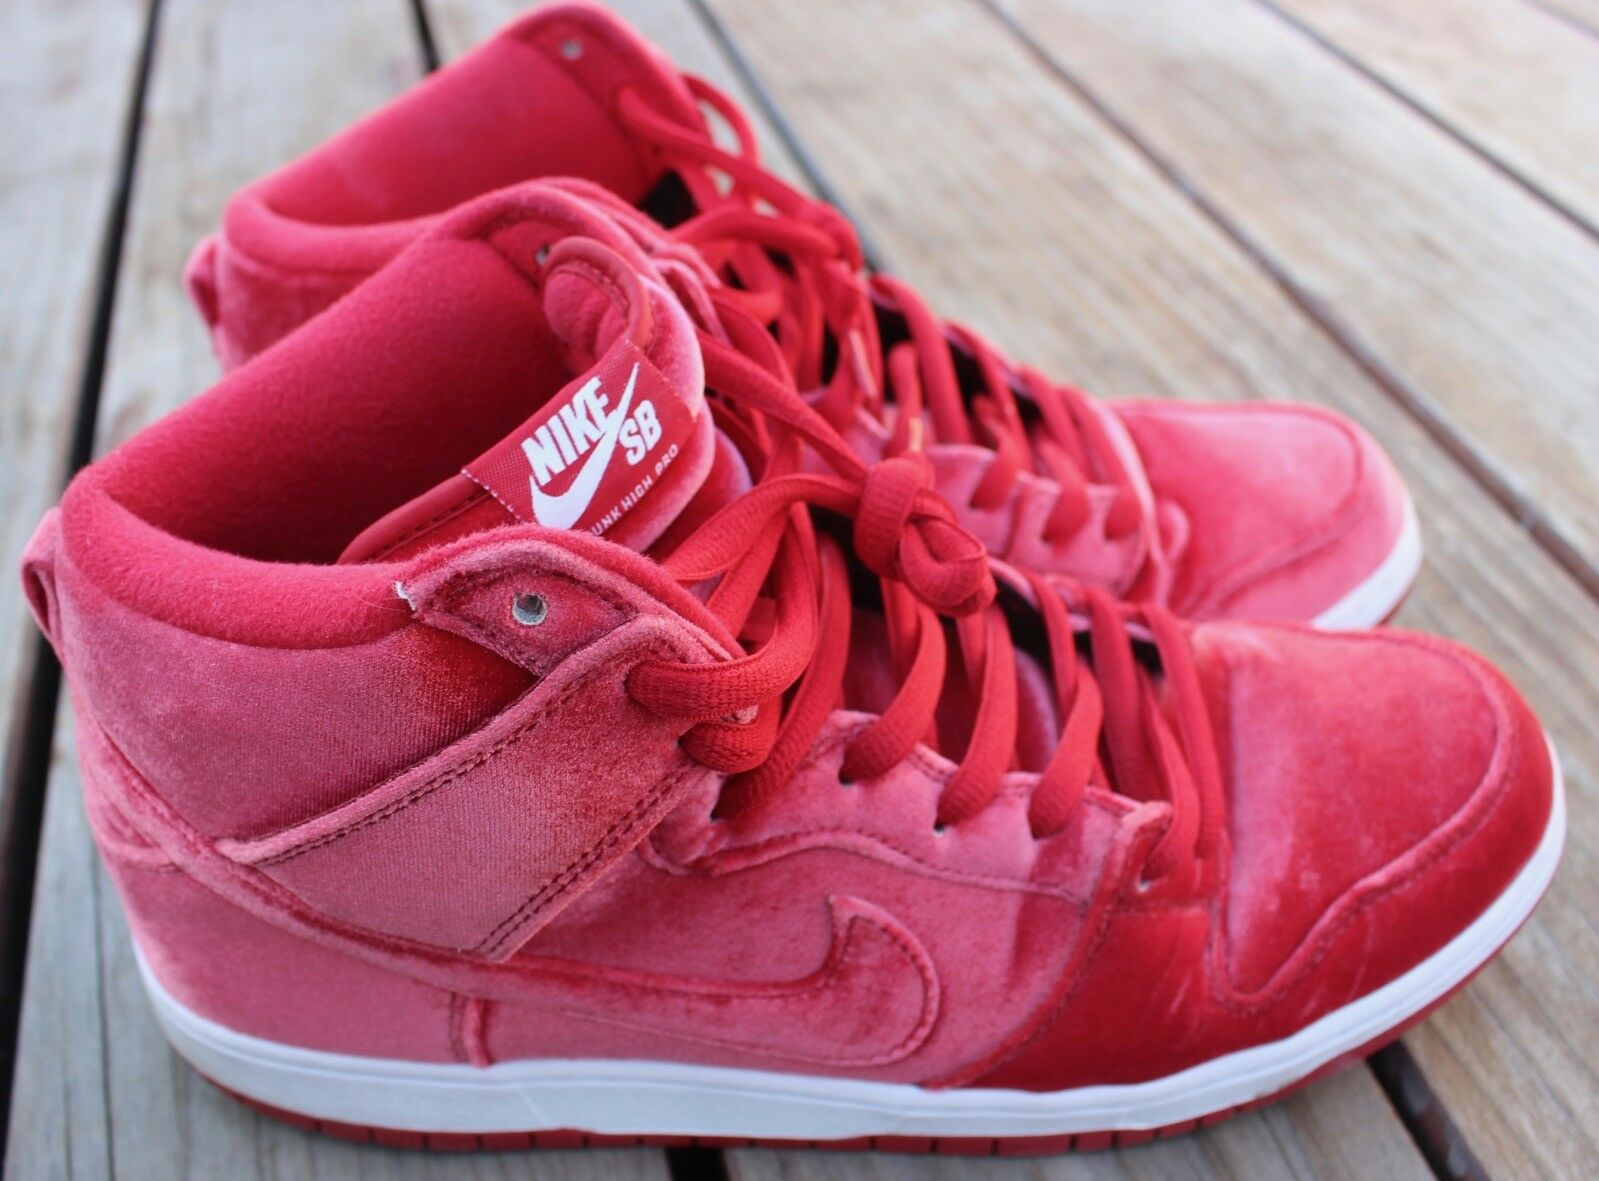 Nike Dunk High Premium SB Gym Red Suede Shoes Box 313171-661 Size 12 Skateboard